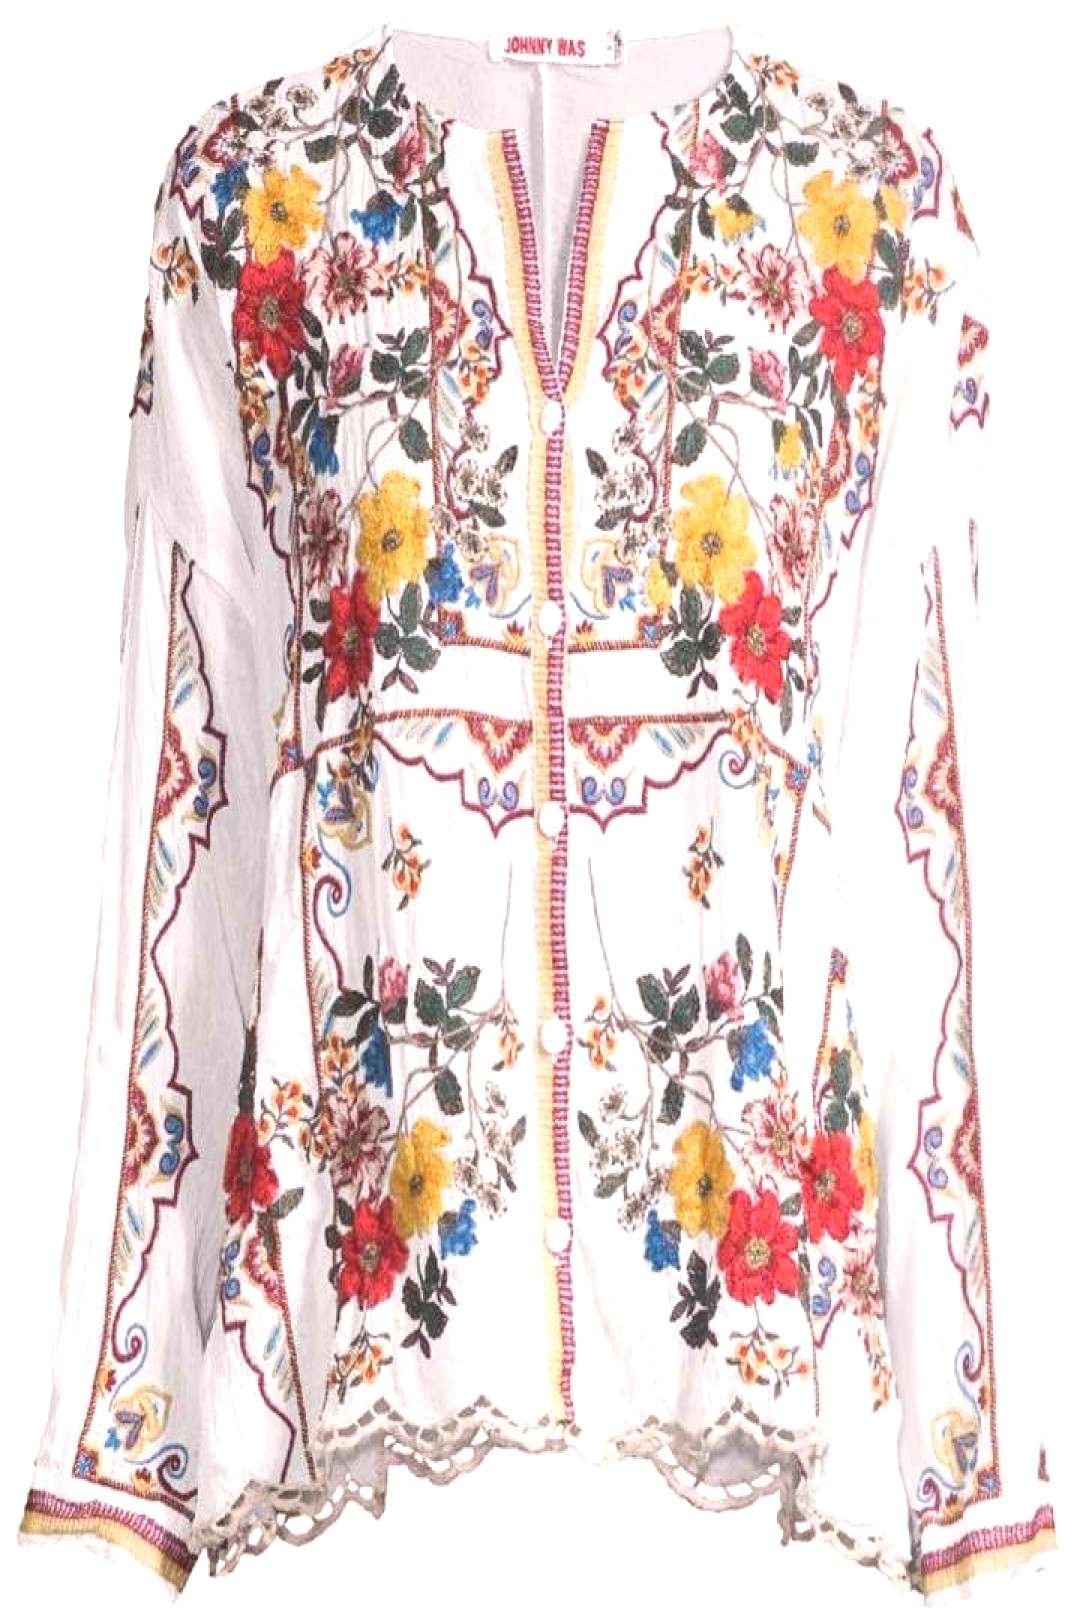 Johnny Was Cabo Embroidered Blouse ,